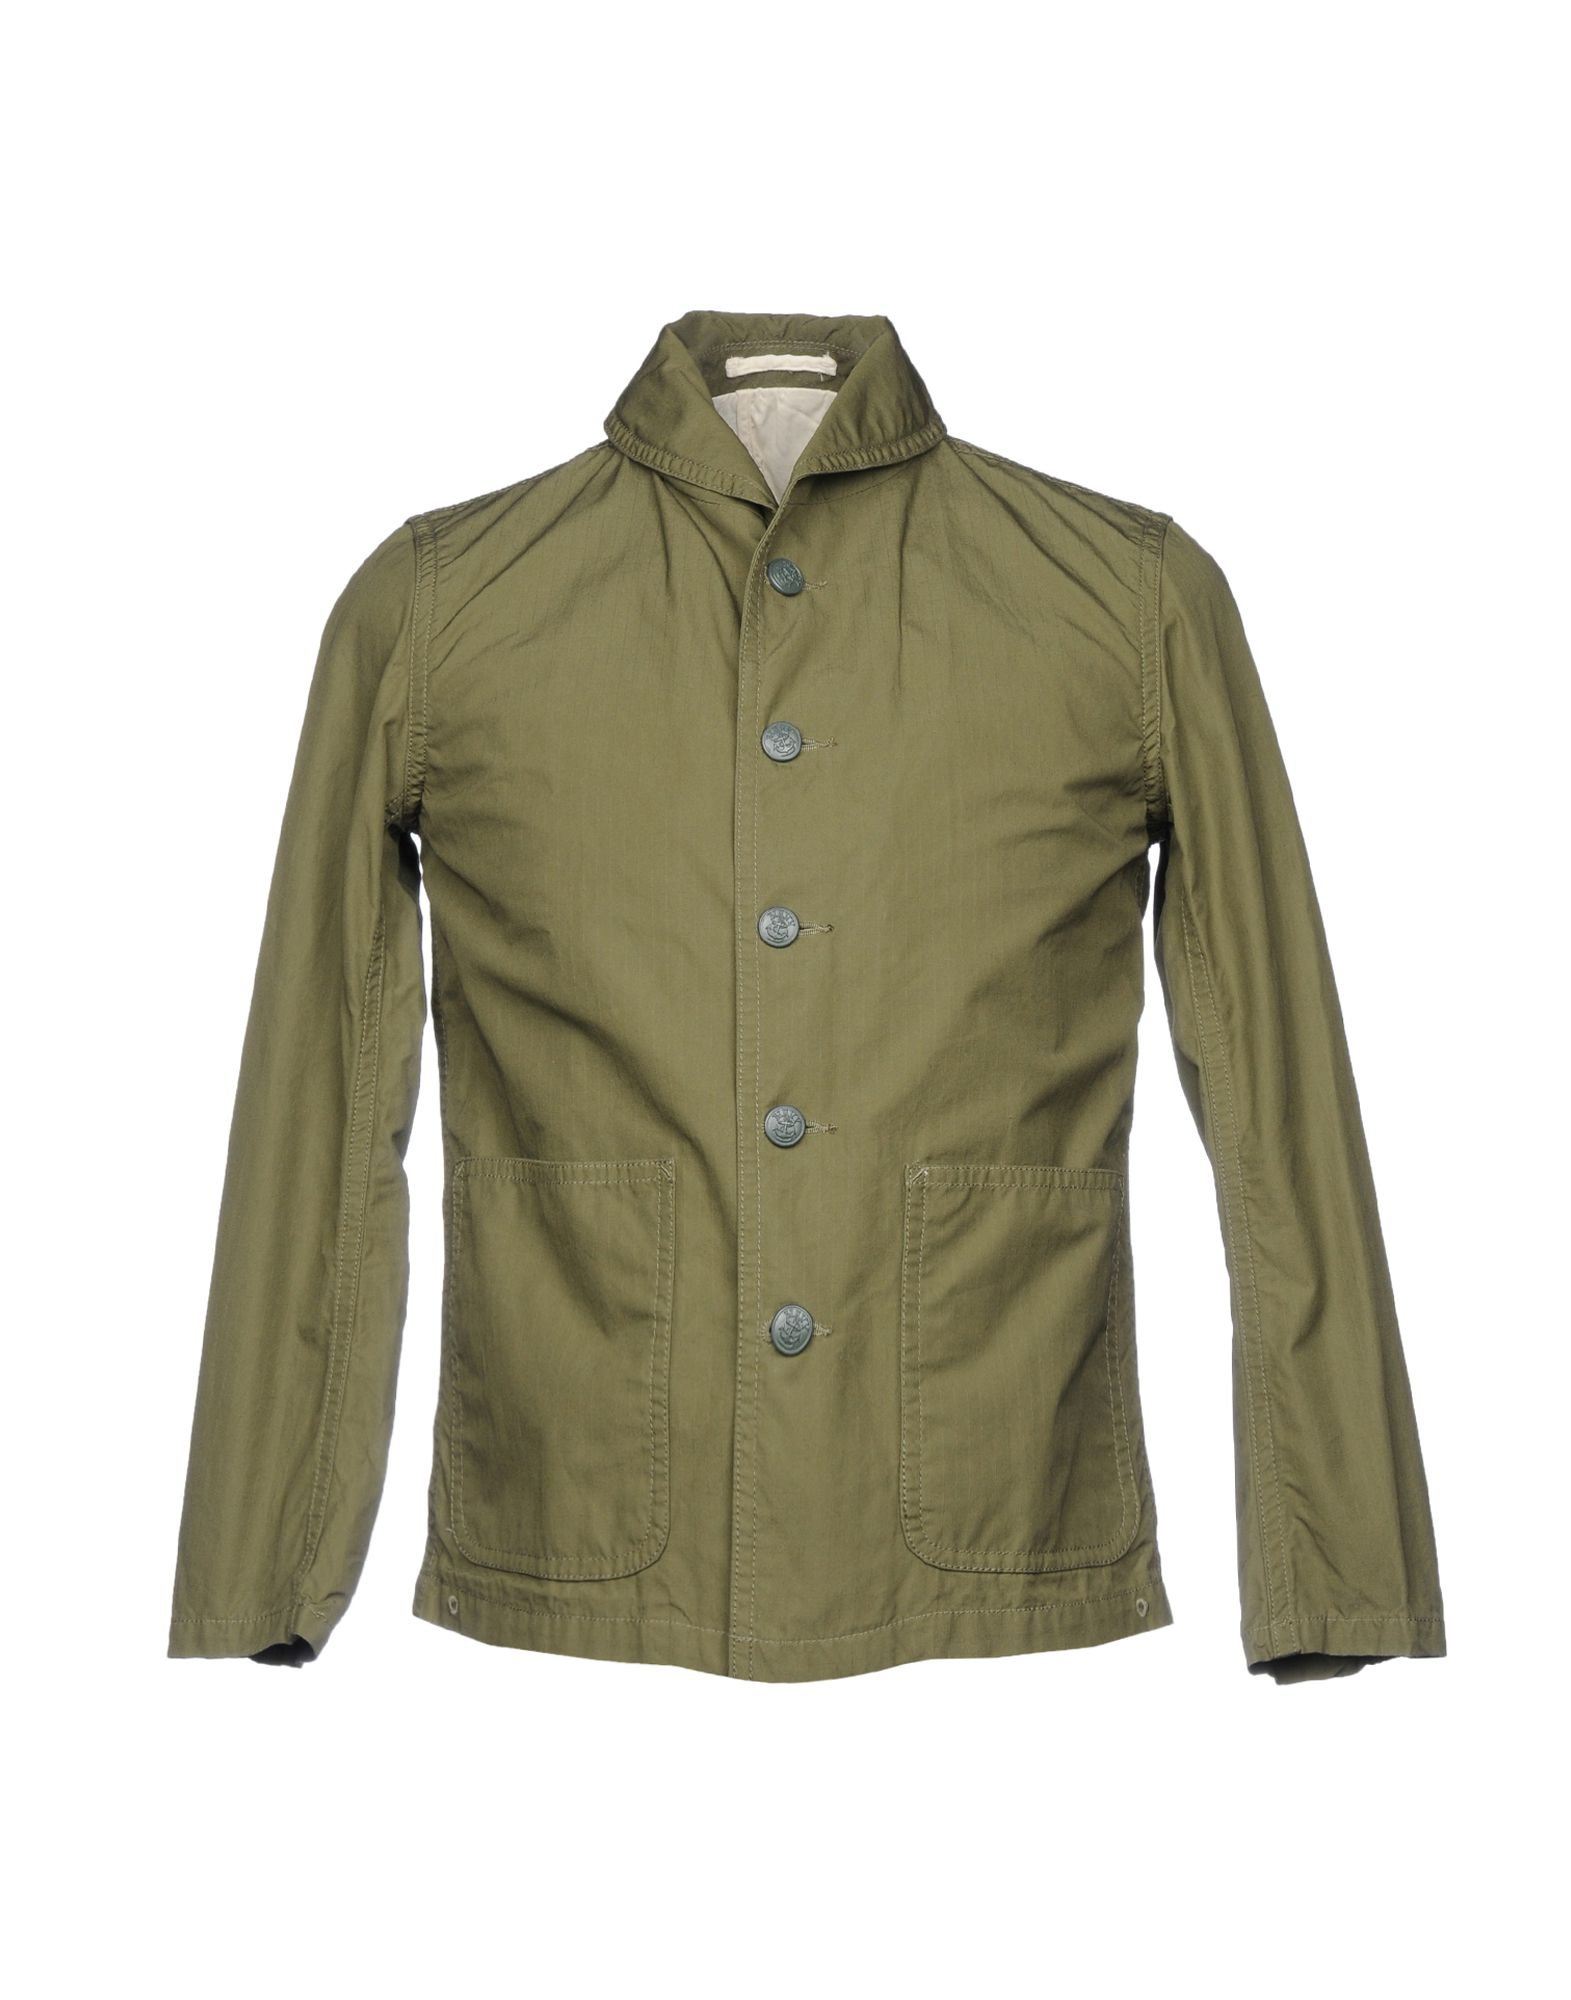 BEAMS Blazer in Military Green